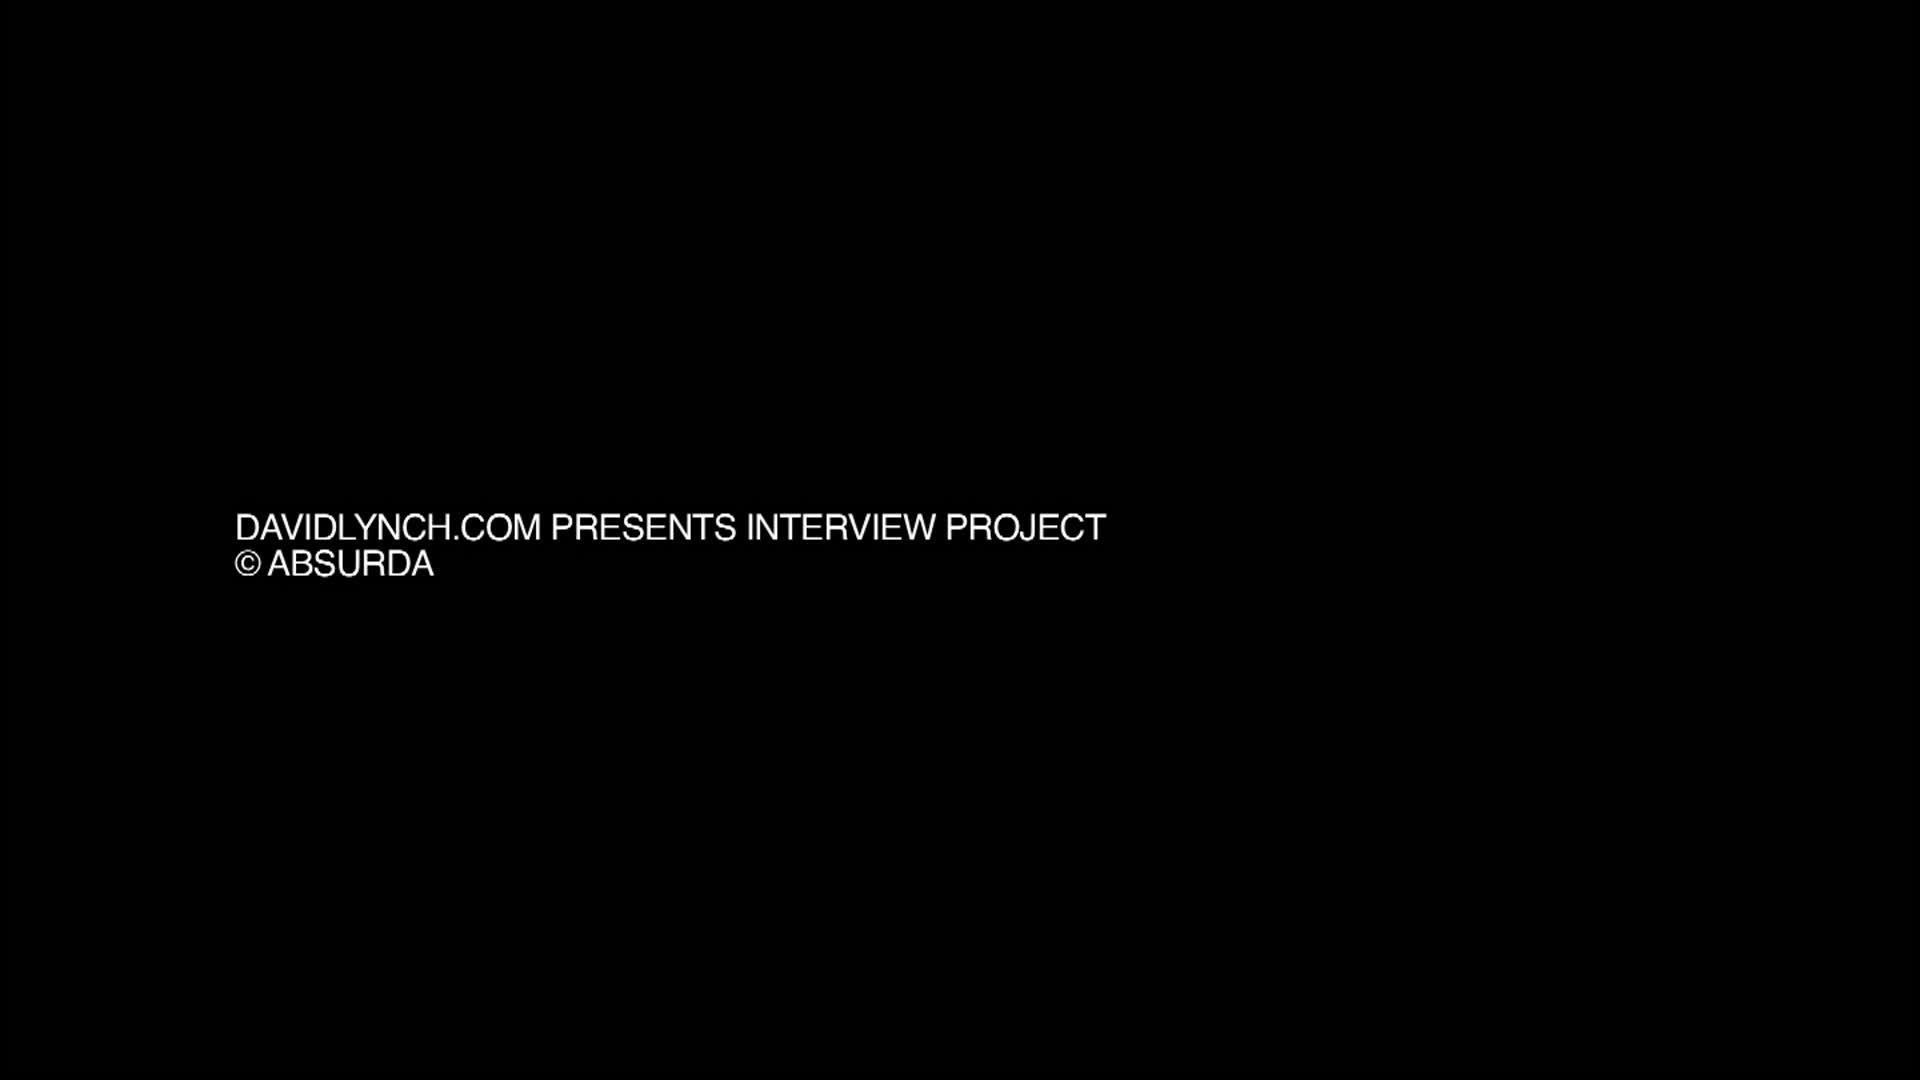 2010 Webby Winner - David Lynch Interview Project